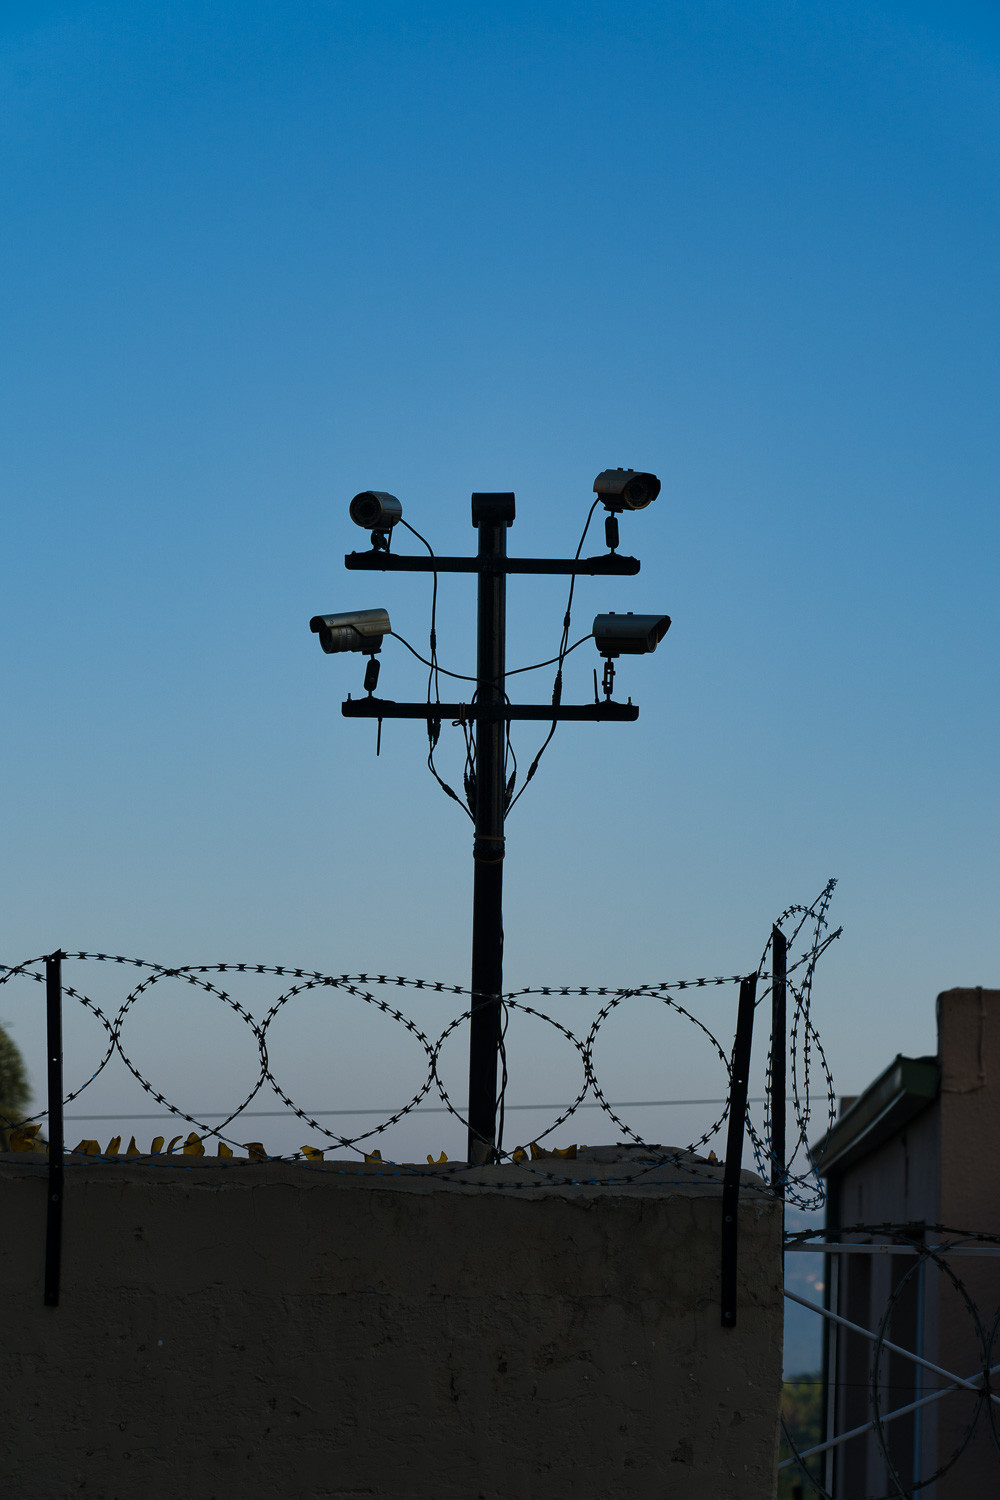 Security cameras and razor wire